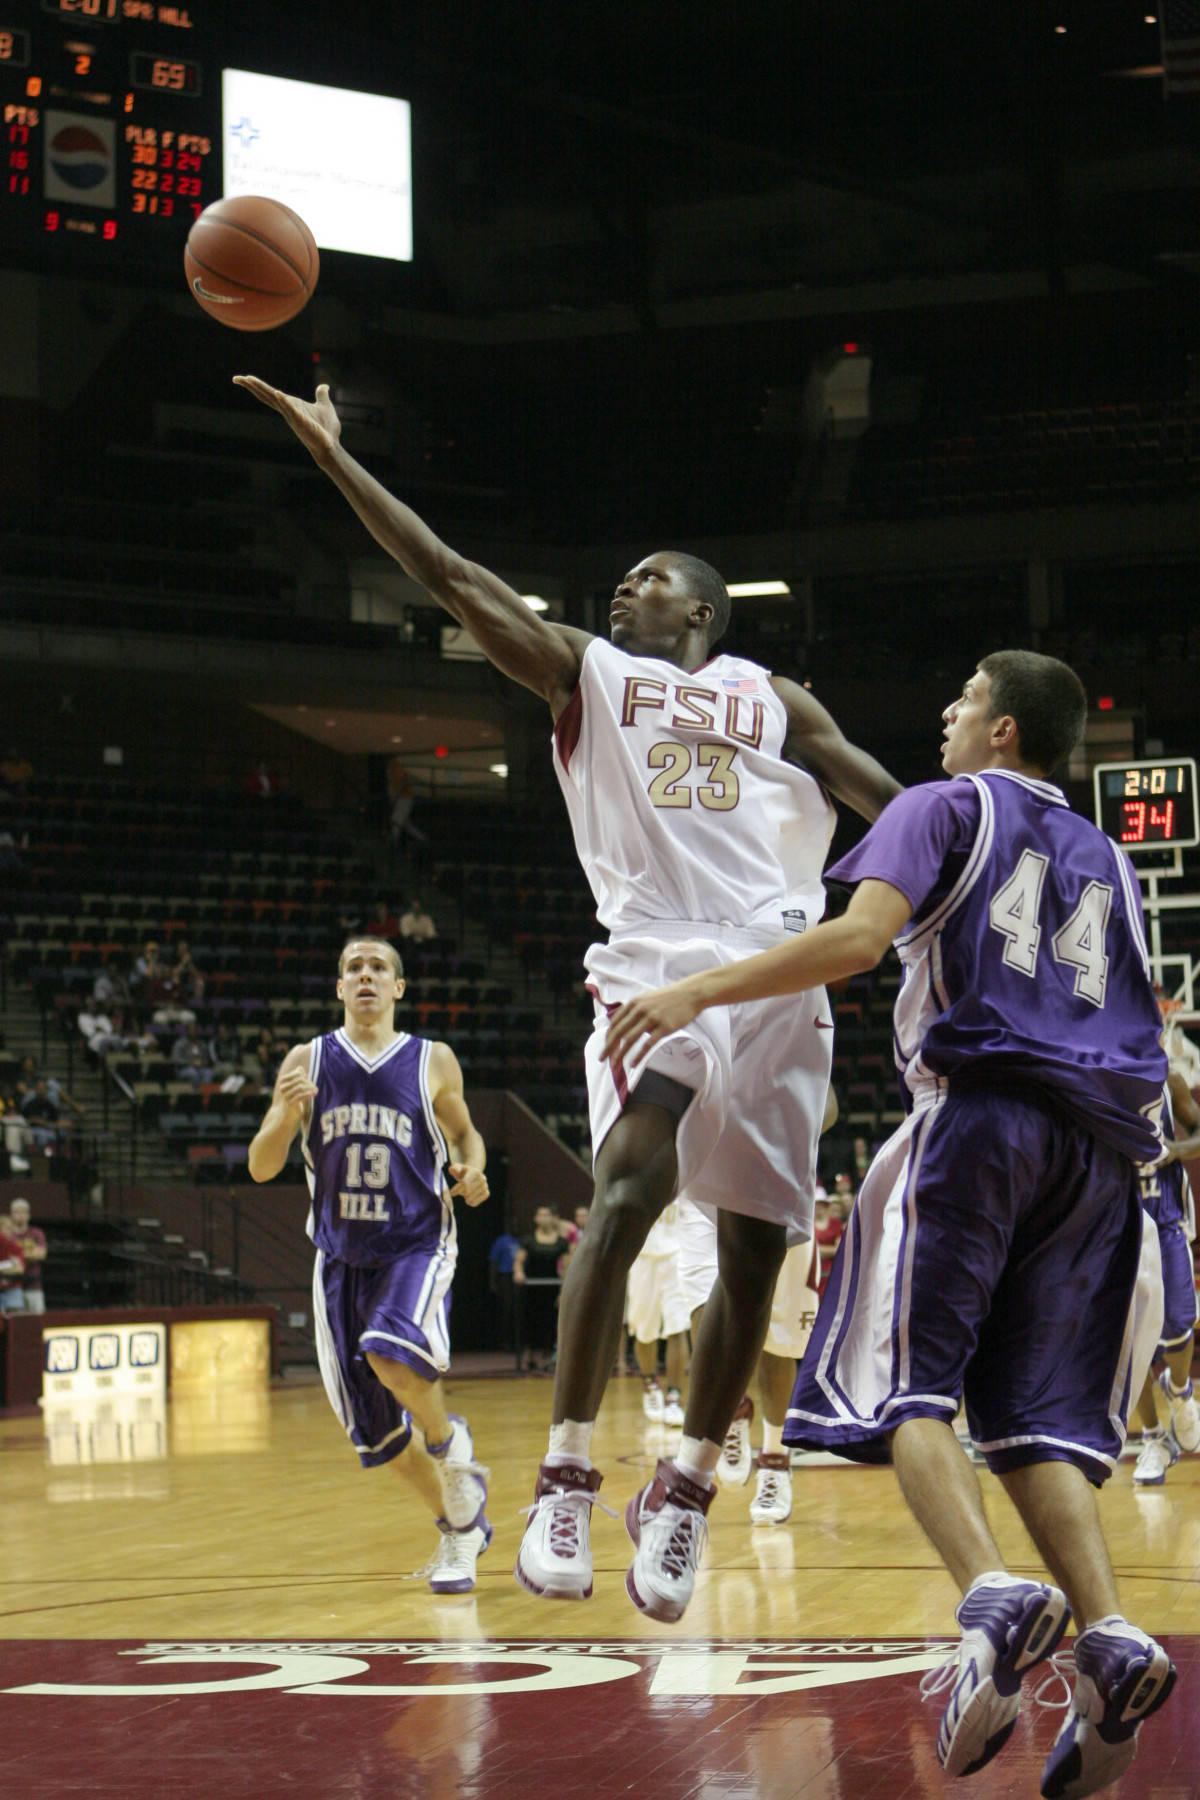 November 14, 2006: Toney Douglas and the Seminoles play host to SMU on Tuesday night in#$%^the final round of the Colonial Classic in Tallahassee.